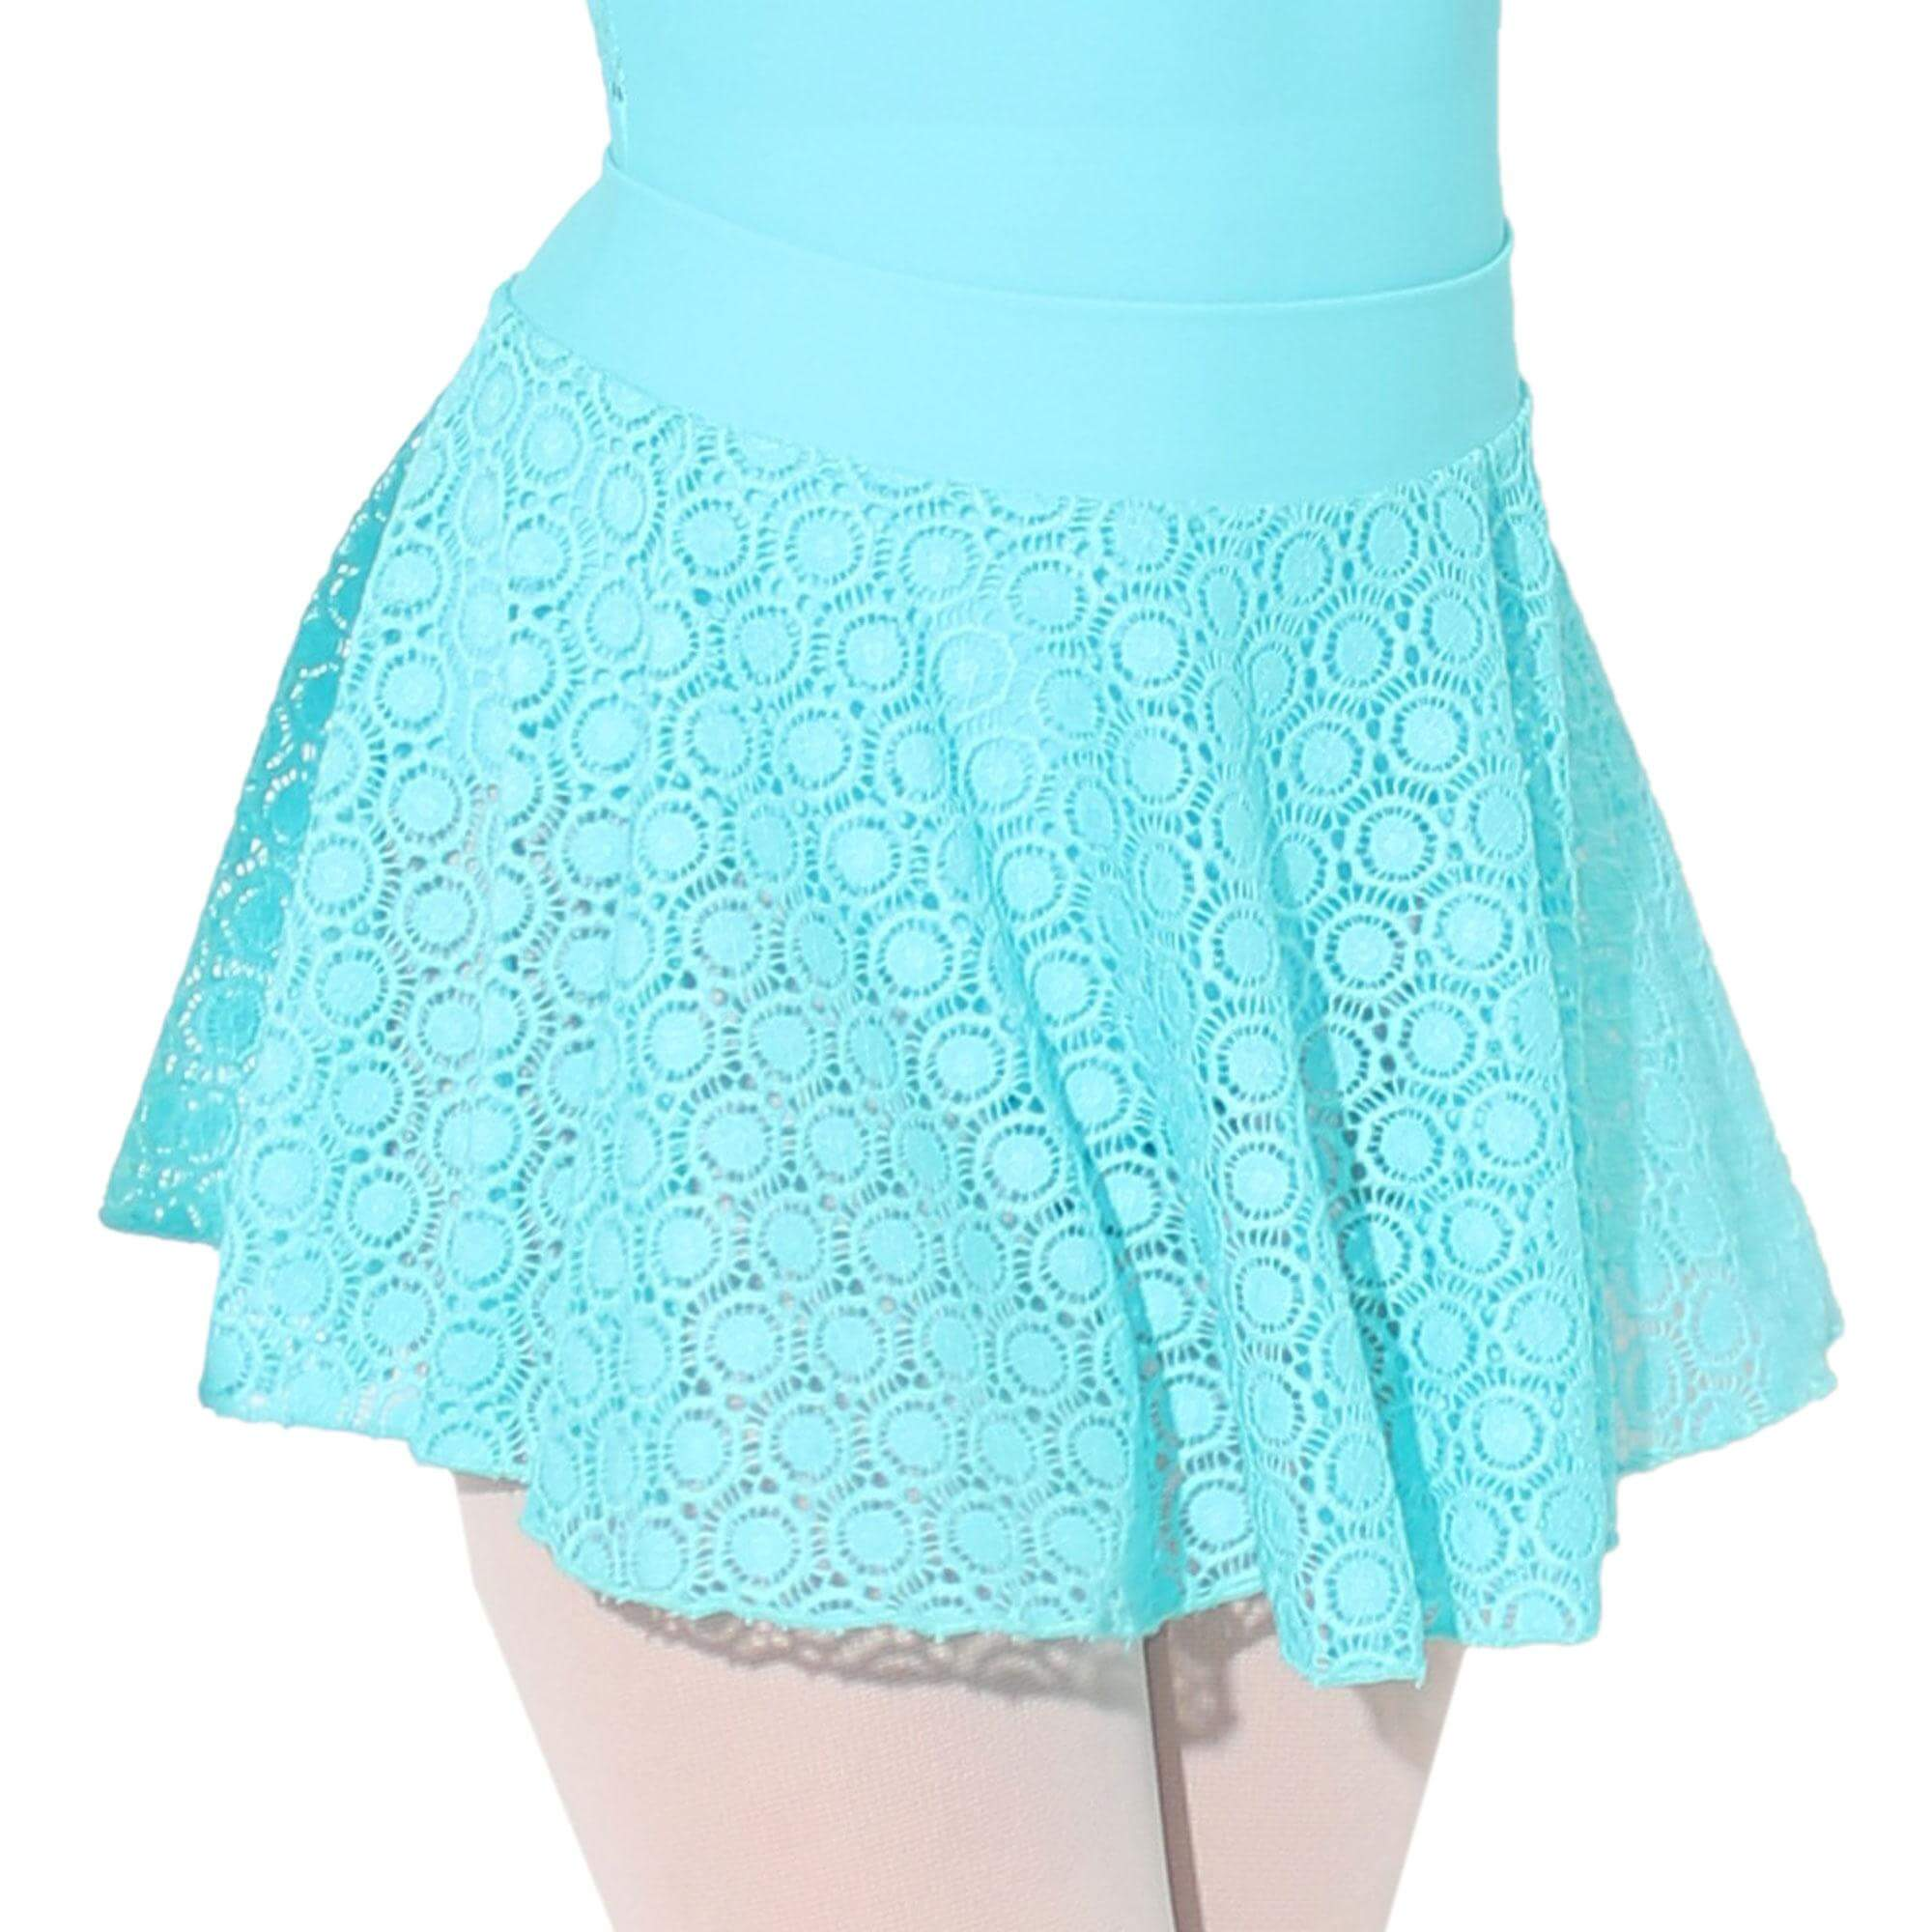 Reflectionz Crochet Skirt